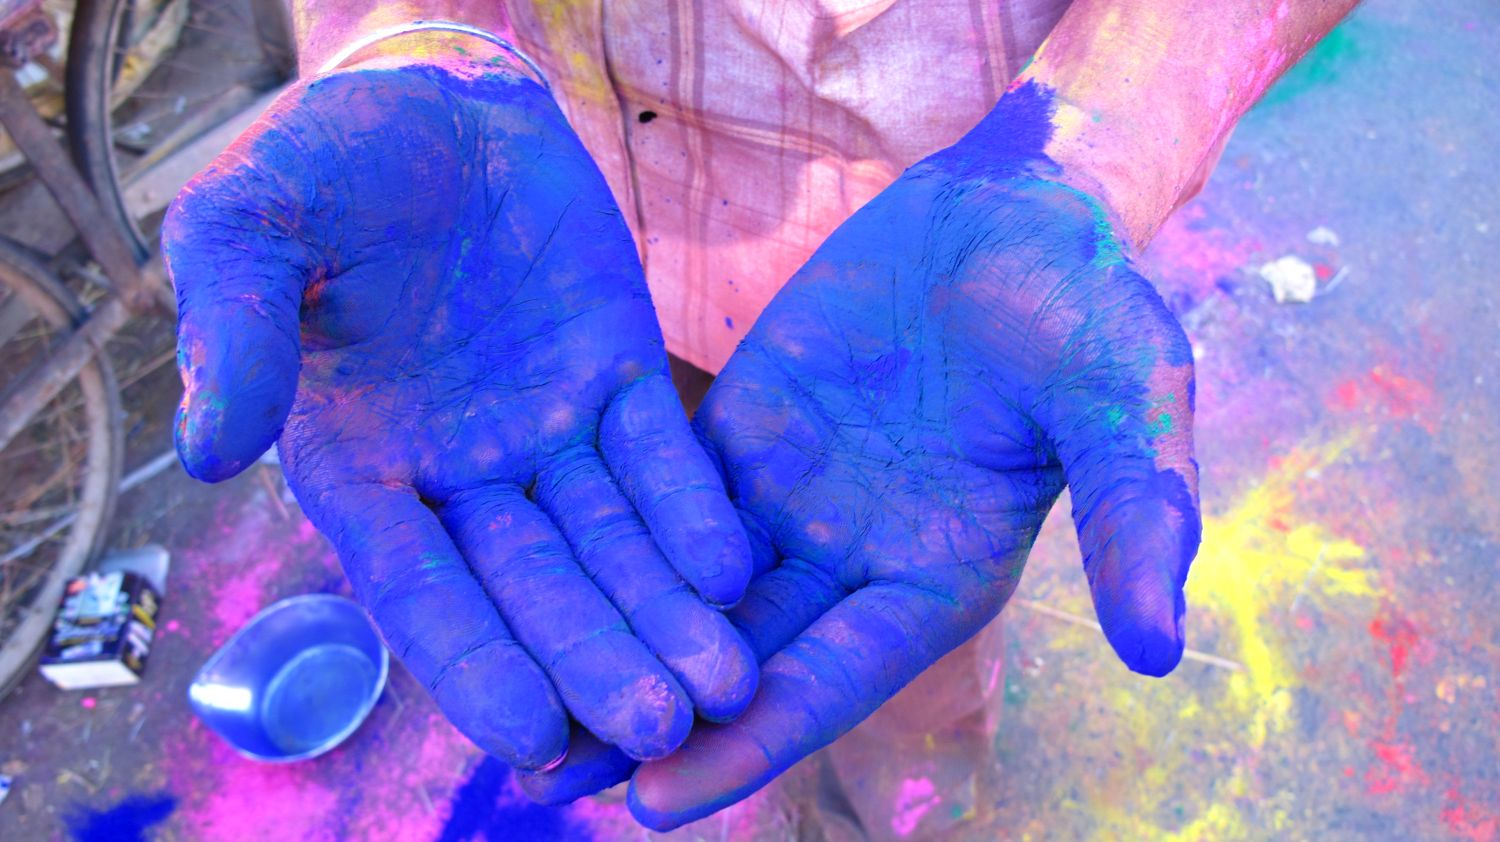 Jaipur | The Holi 17 | Feast of colors | Indian man celebrating the Holi | Blue hands | ©sandrine cohen